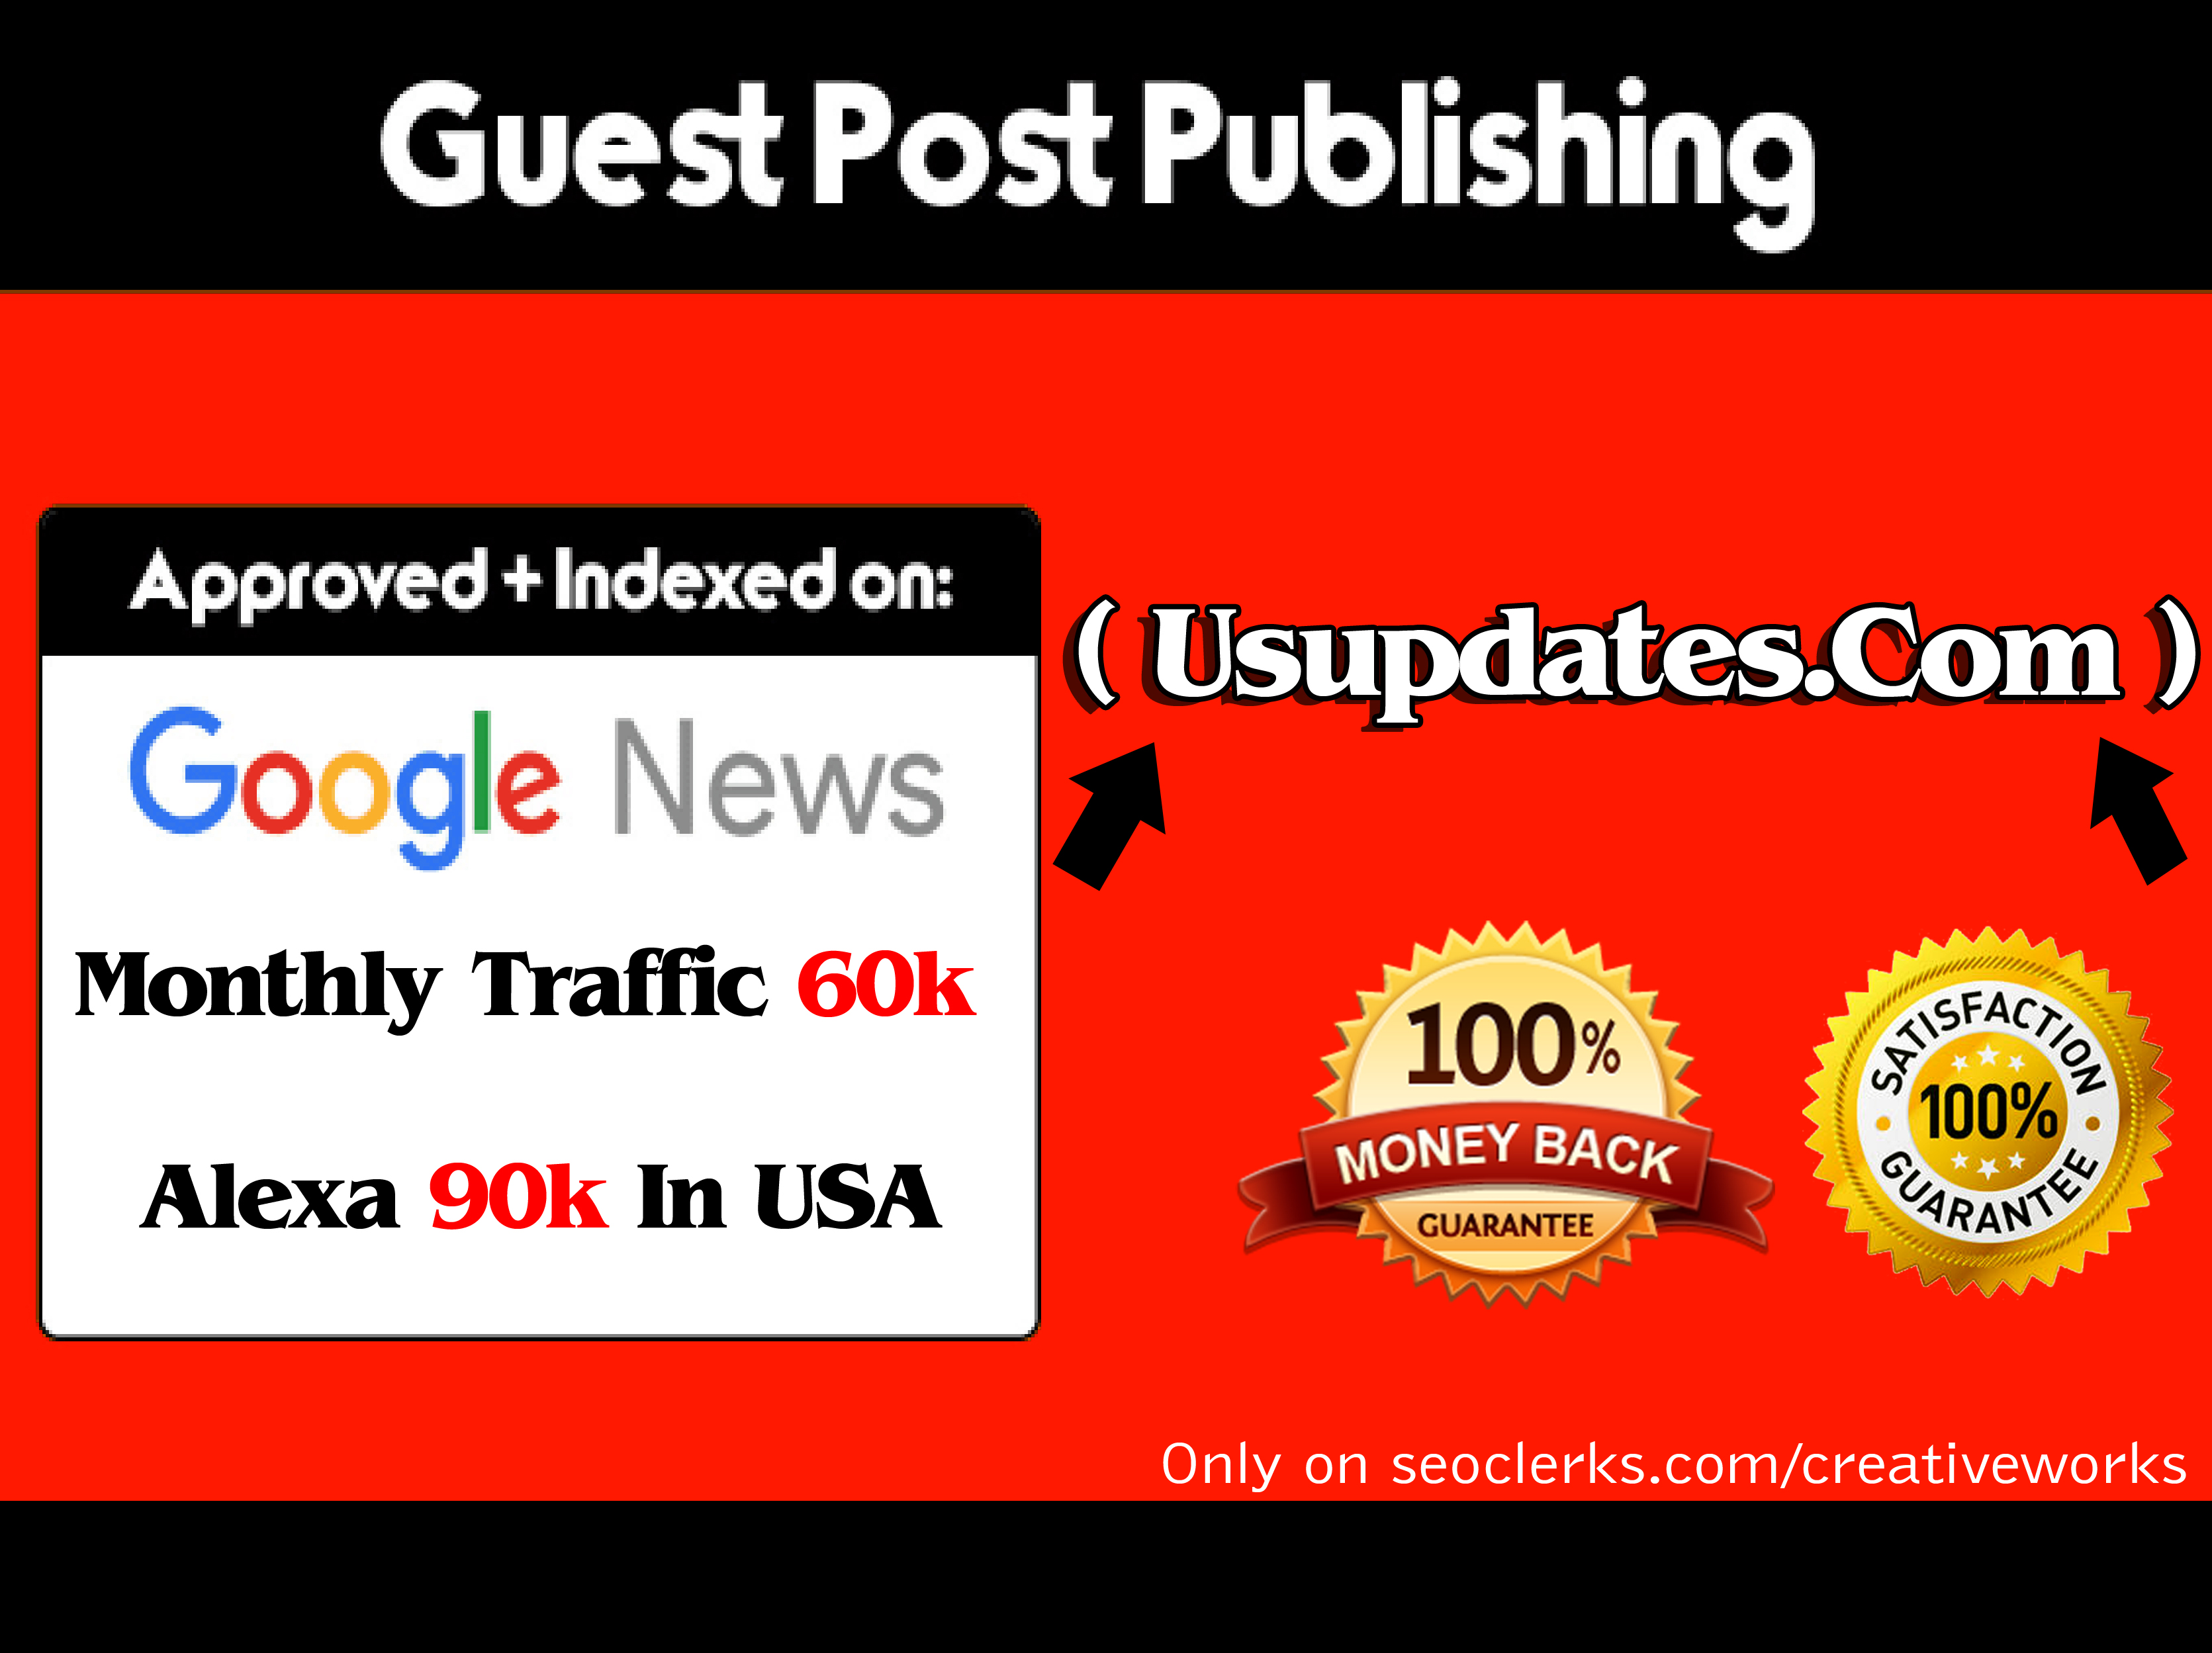 Publish a Guest Post On Usupdates  com for $39